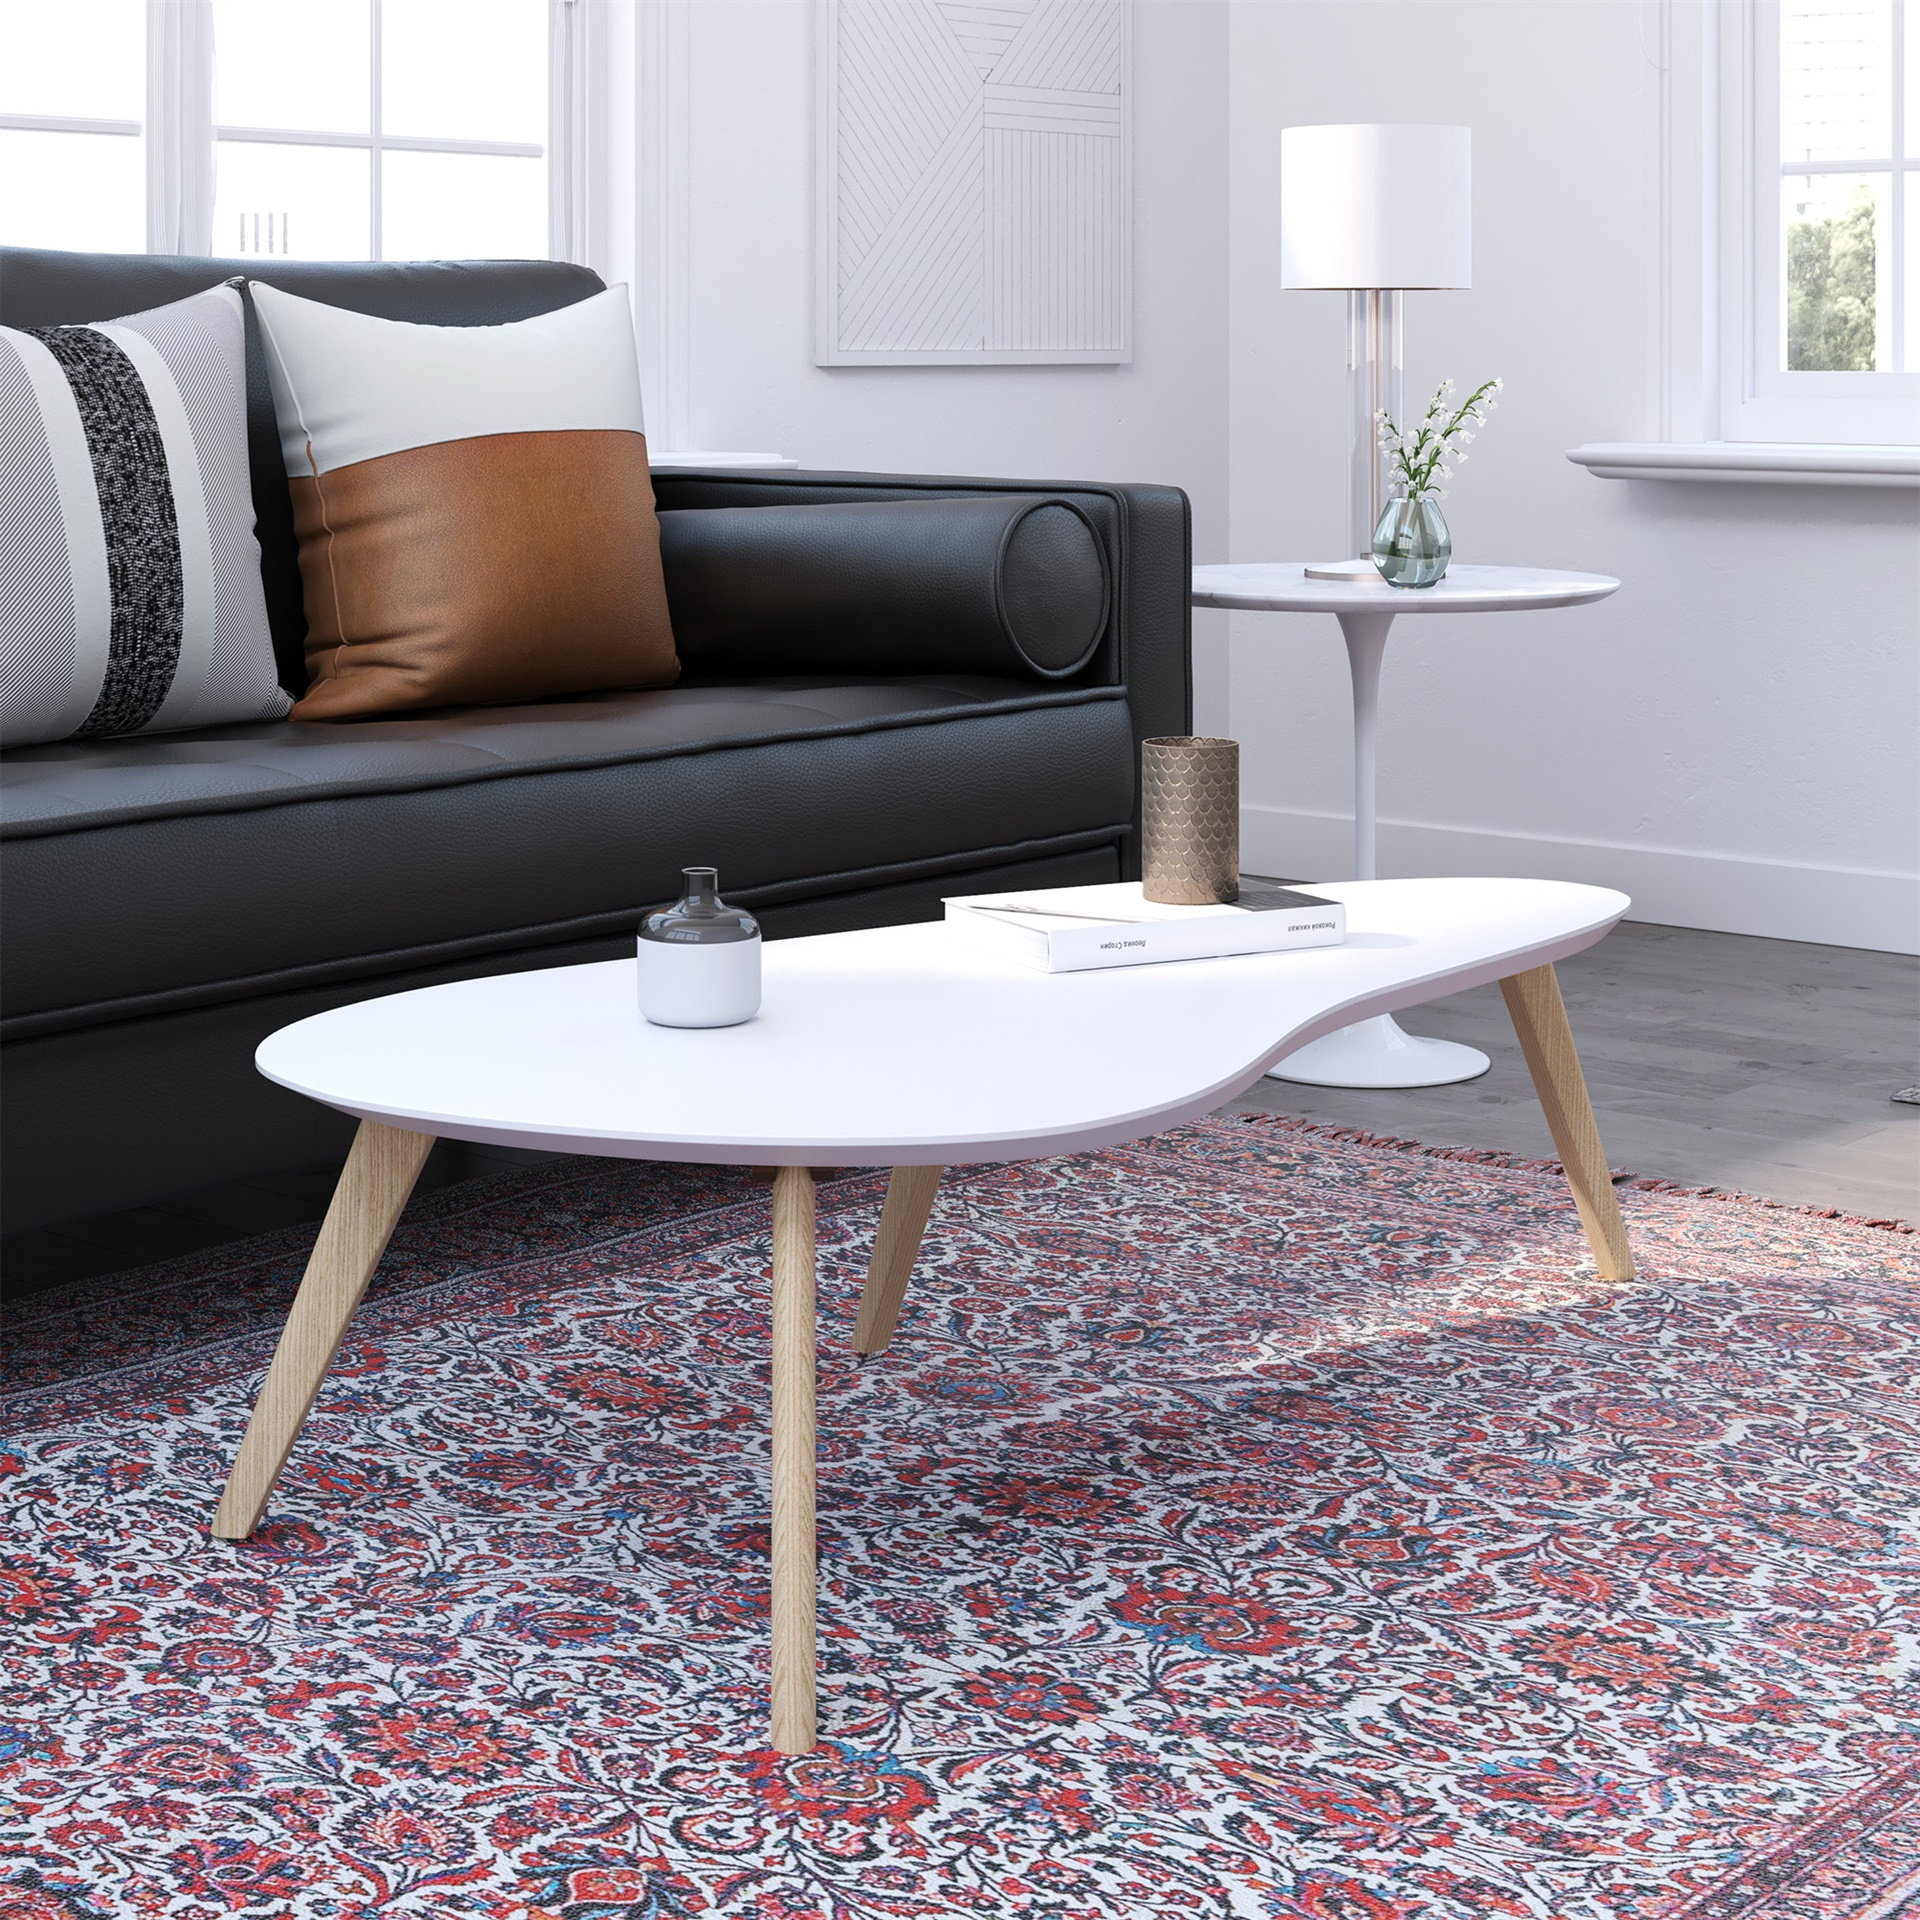 - Kidney Shaped Coffee Table (White Top)